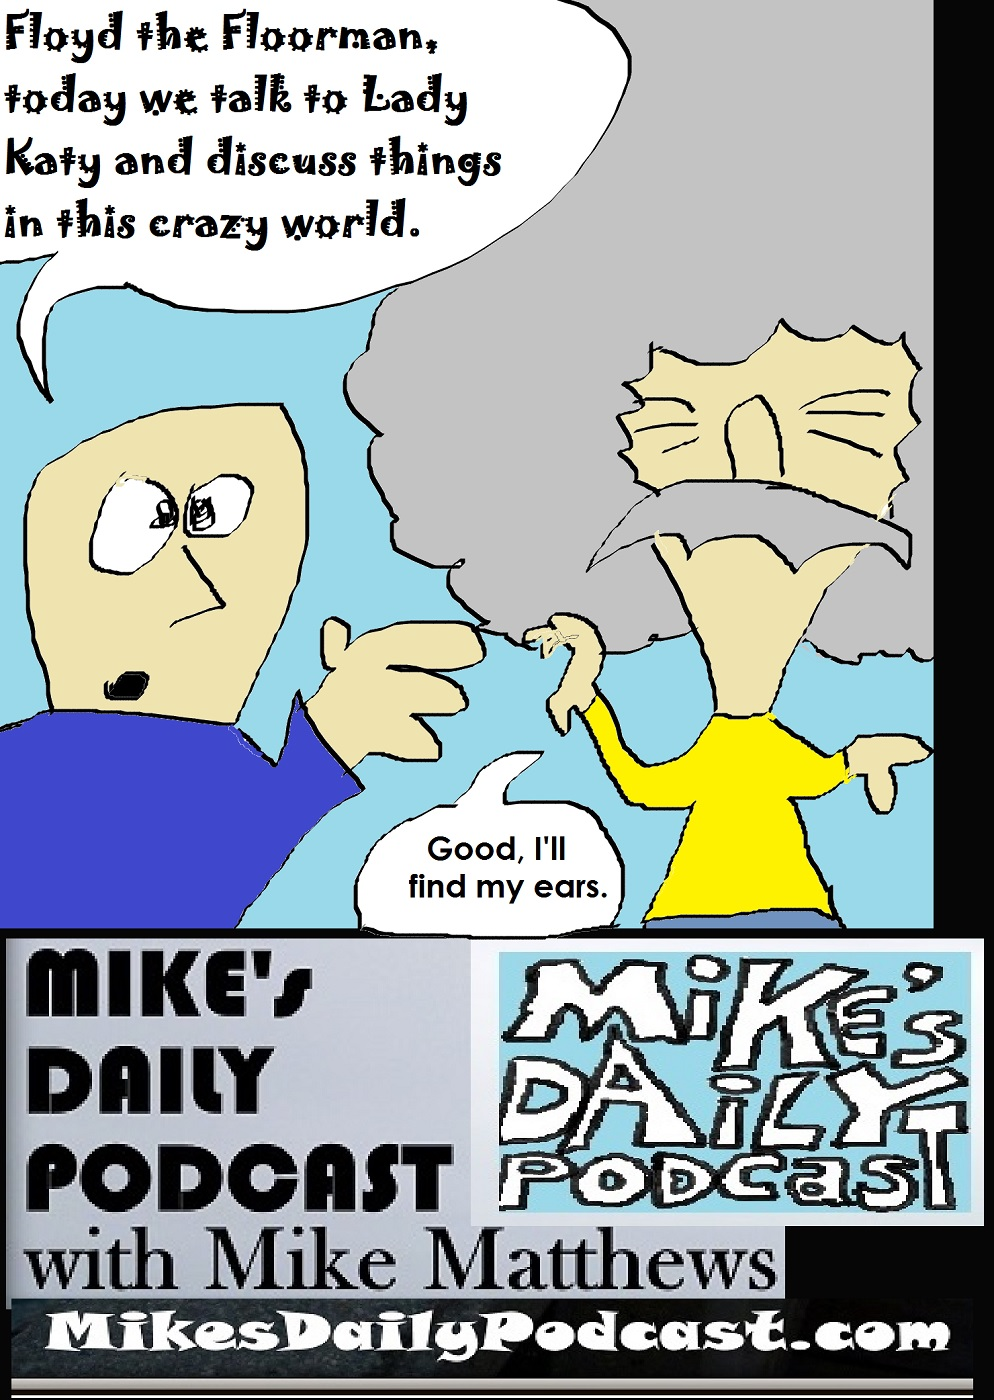 MIKEs DAILY PODCAST 1114 Floyd the Floorman